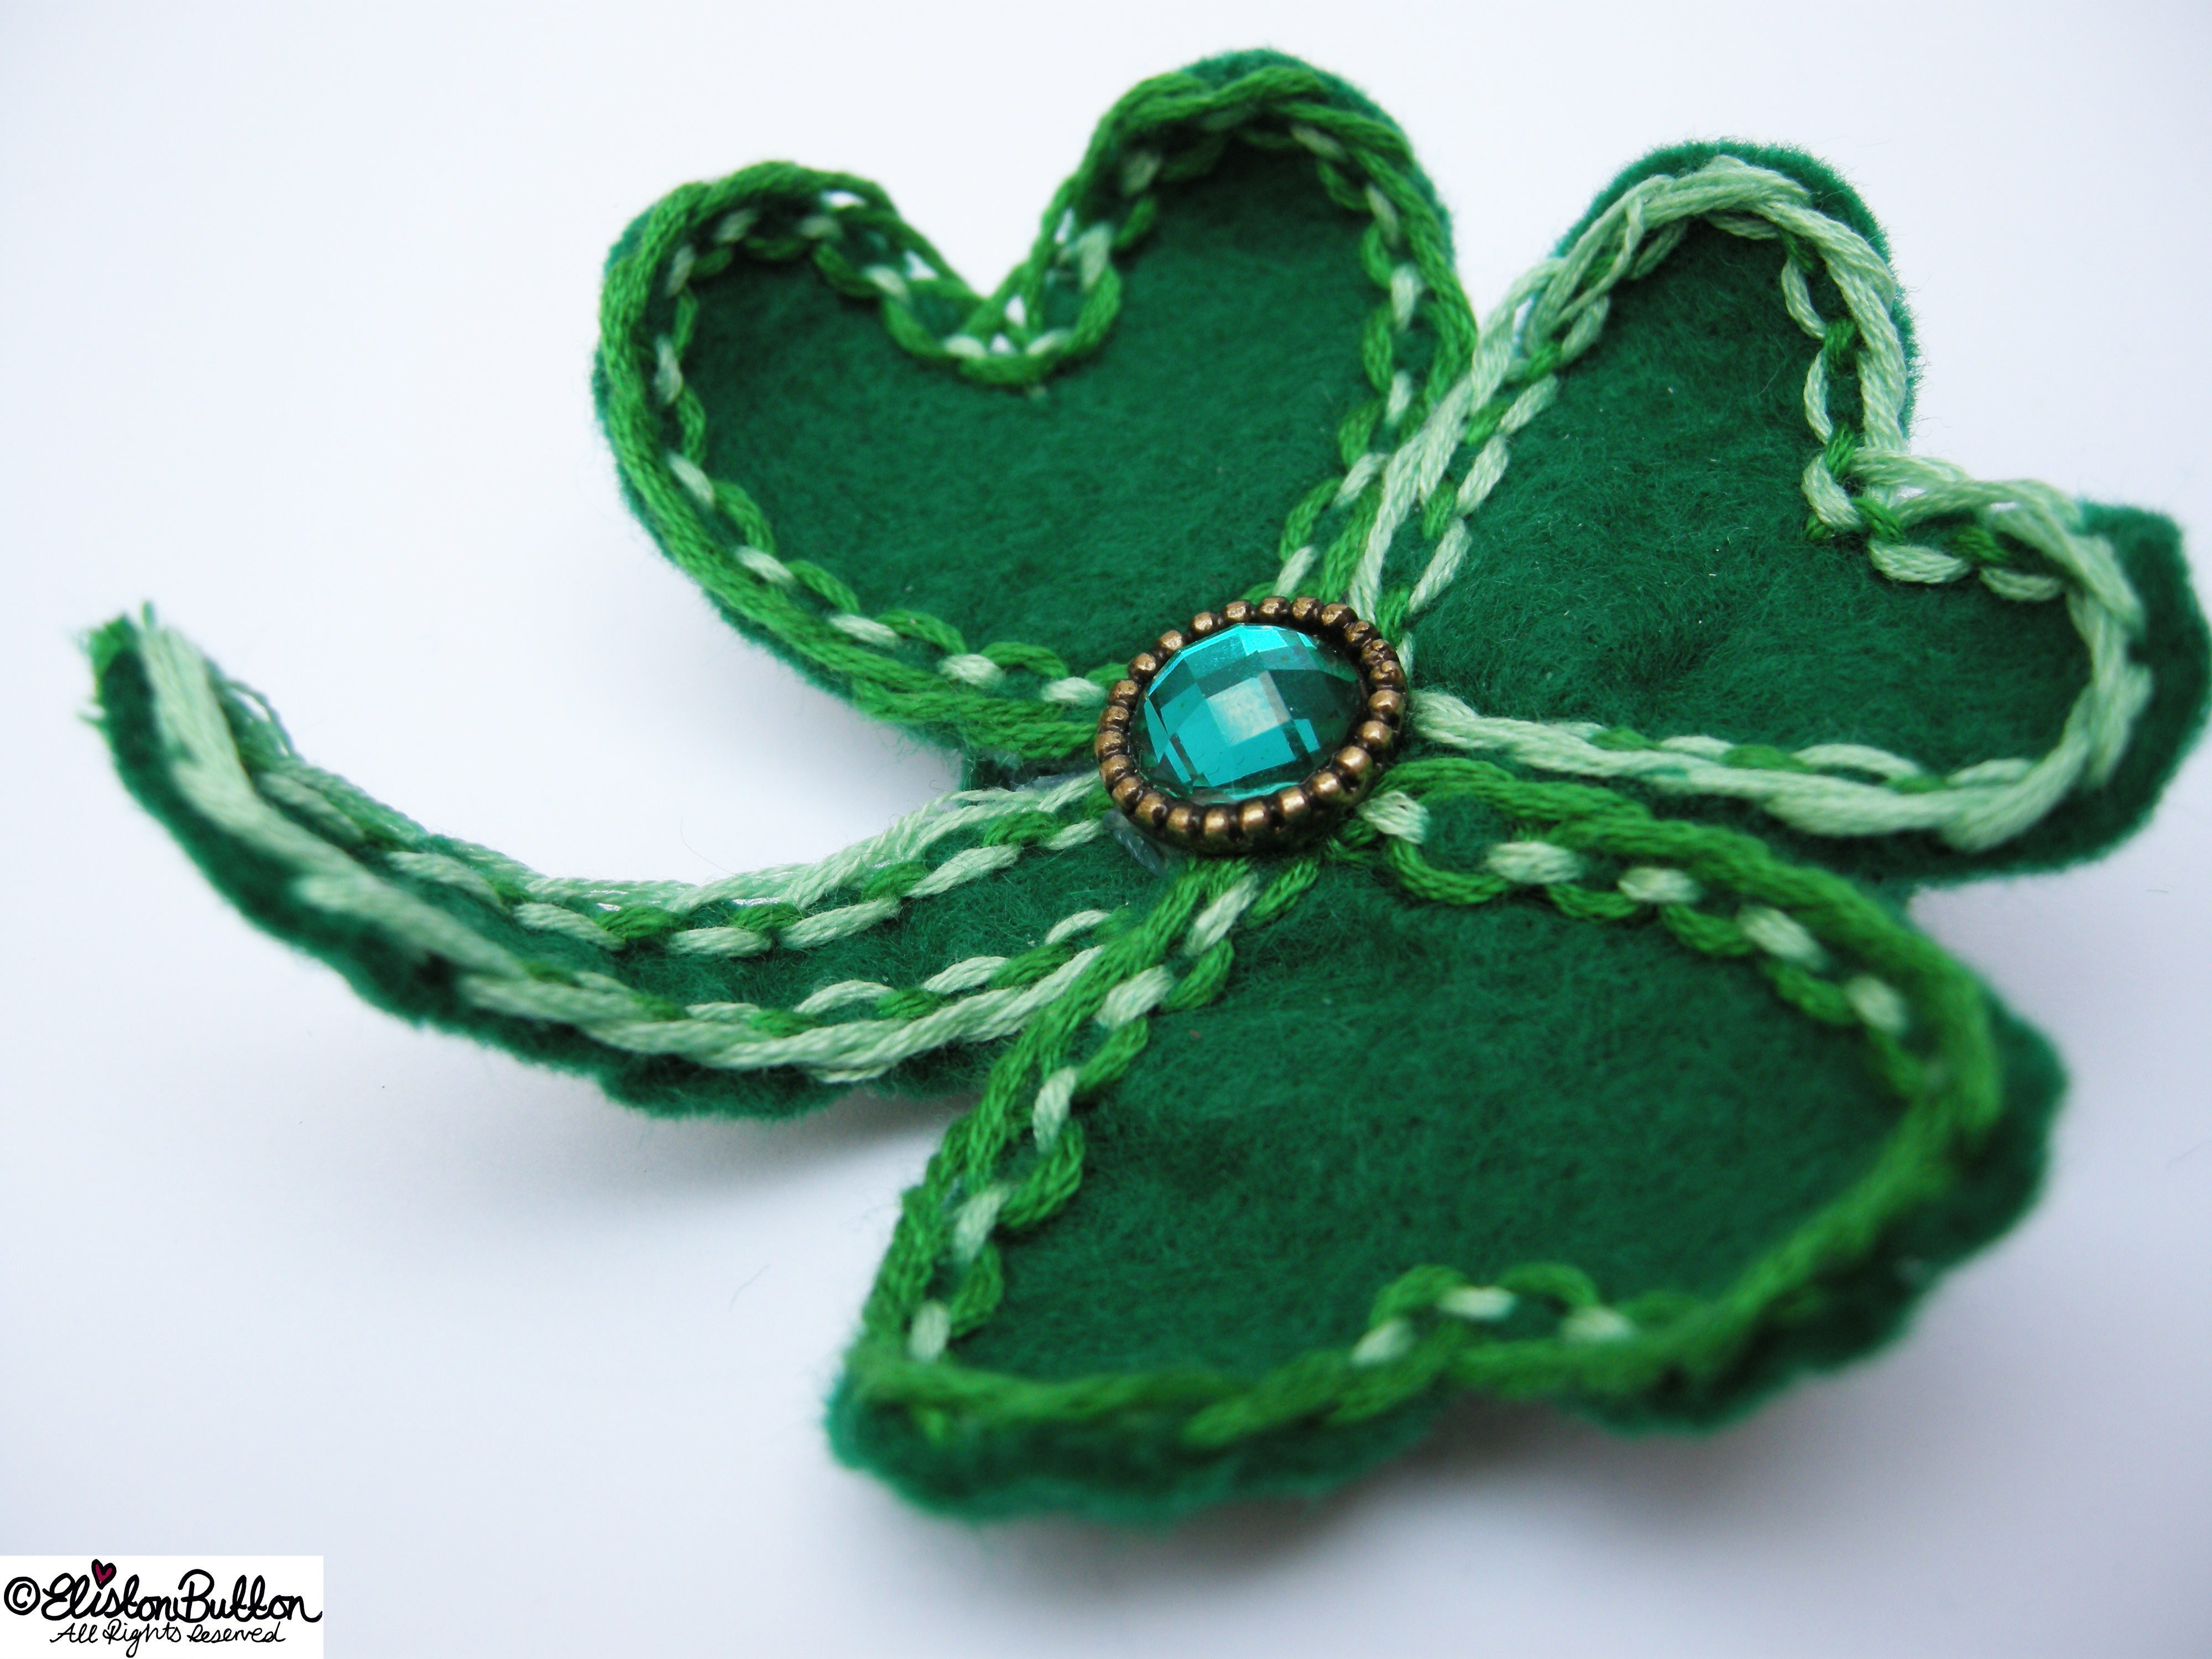 Embroidered Felt Shamrock Clover Shaped Brooch - Lucky Clover - 27 Before 27 – Lucky at www.elistonbutton.com - Eliston Button - That Crafty Kid – Art, Design, Craft & Adventure.